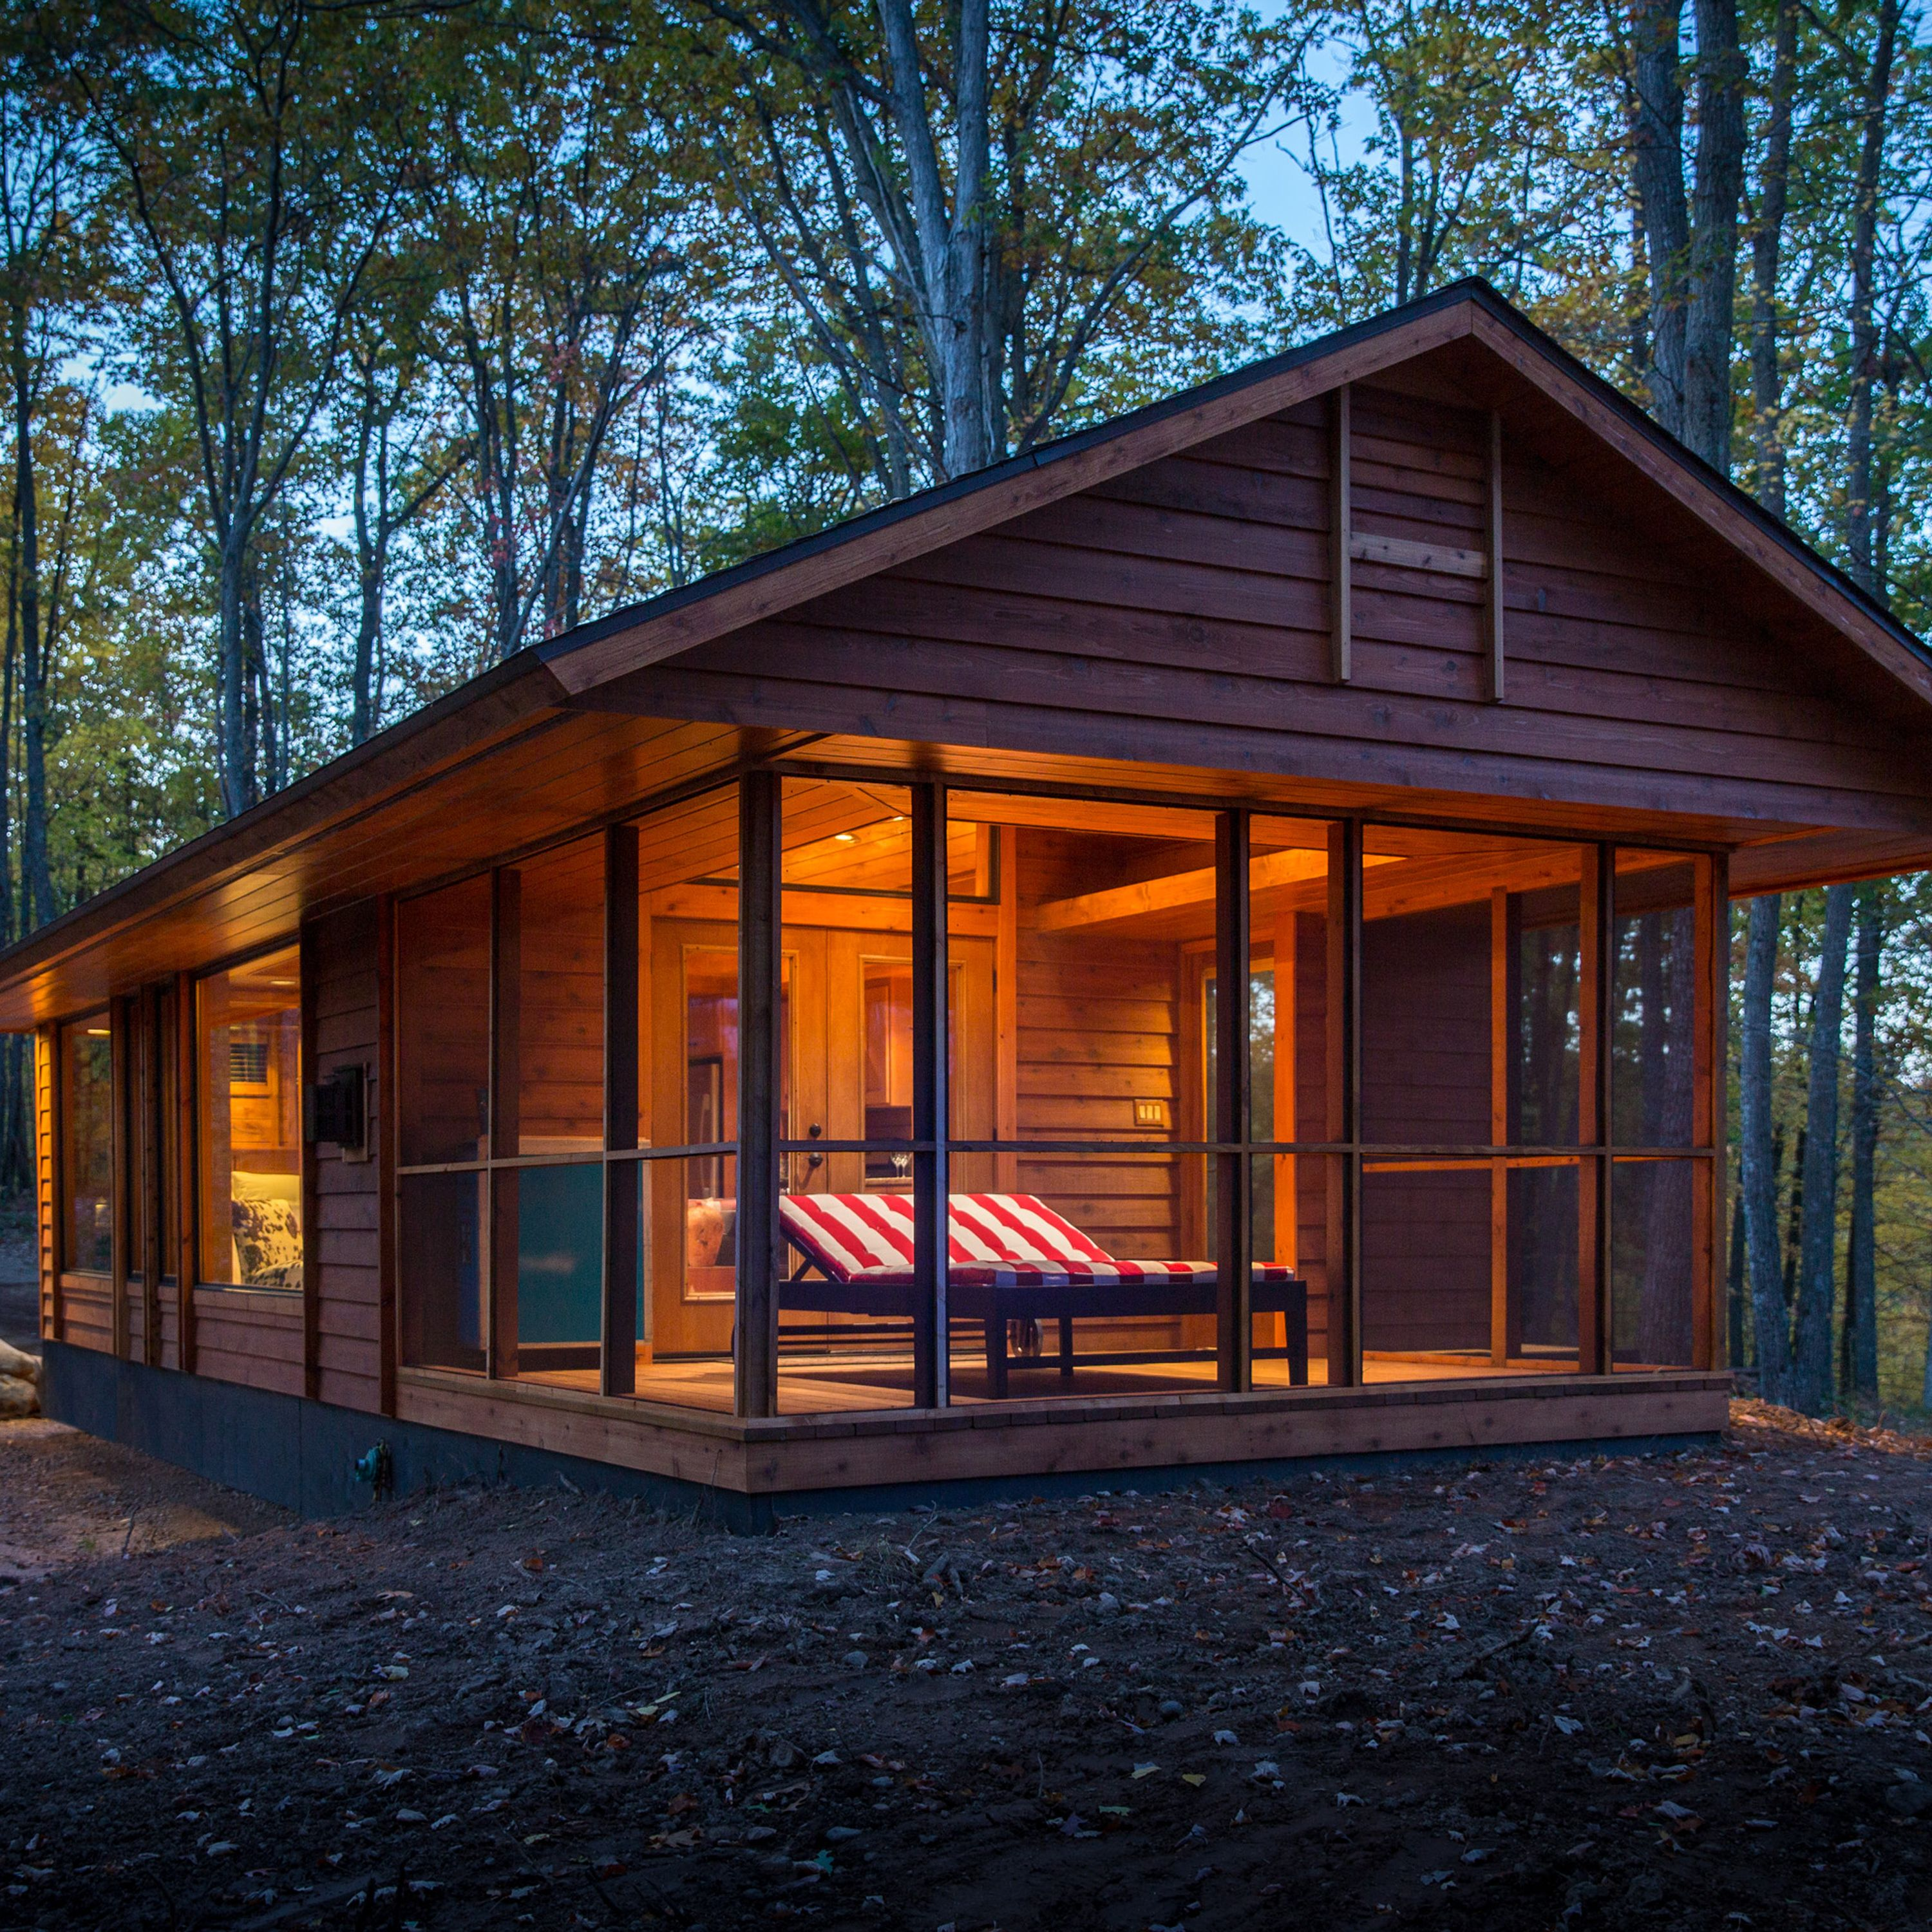 """<p dir=""""ltr"""">Inspired by and built by the team responsible for the gorgeous cottages at the <a href=""""http://www.canoebay.com/"""" target=""""_blank"""">Canoe Bay&nbsp&#x3B;resort</a> in the woods of Wisconsin, the 392-square-foot Escape looks like a high-end cabin but is actually a 28- by 14-foot Park Model RV on wheels. Vaulted ceilings and a large window wall give an airy feel to the cottage, which includes a living room with fireplace and kitchen wall and a separate bedroom and bath. Large French doors open to a screened porch that can be used as an extended living room, sleeping porch, or a dining area. The red-striped chaise lounge doubles as a bed with heated coils, perfect for naps on chilly days. Escape is available to rent at Canoe Bay, or can be custom-built for buyers and delivered ready to live-in. Prices start at $79,900.</p><p dir=""""ltr""""><a href=""""http://www.escapehomes.us/"""" target=""""_blank"""">Find out more about Escape</a>.</p>"""